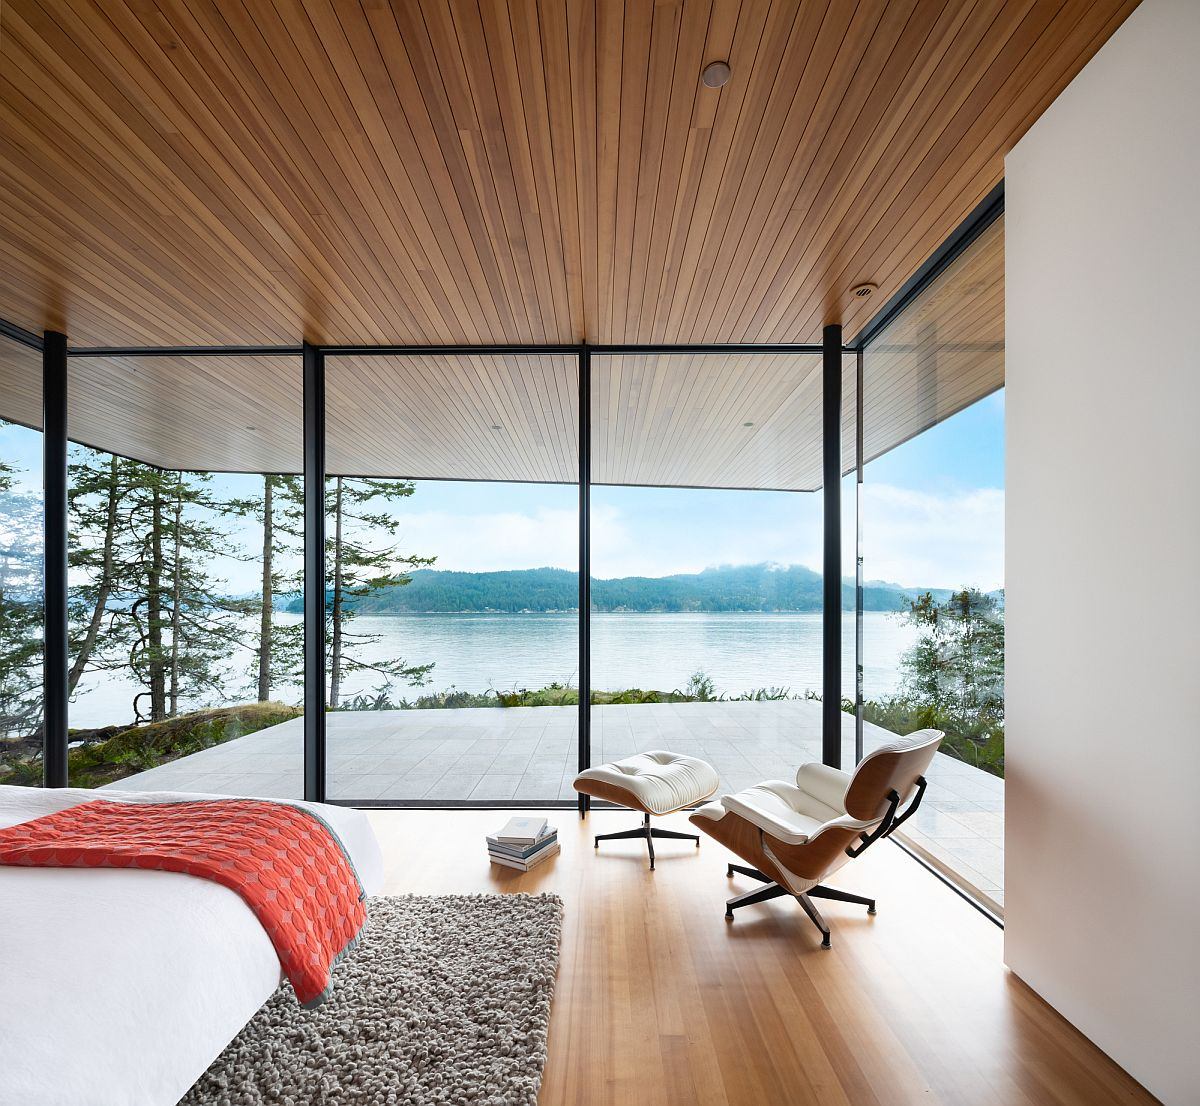 Floor-to-ceiling glass walls open up the bedroom to the stunning ocean view and beyond